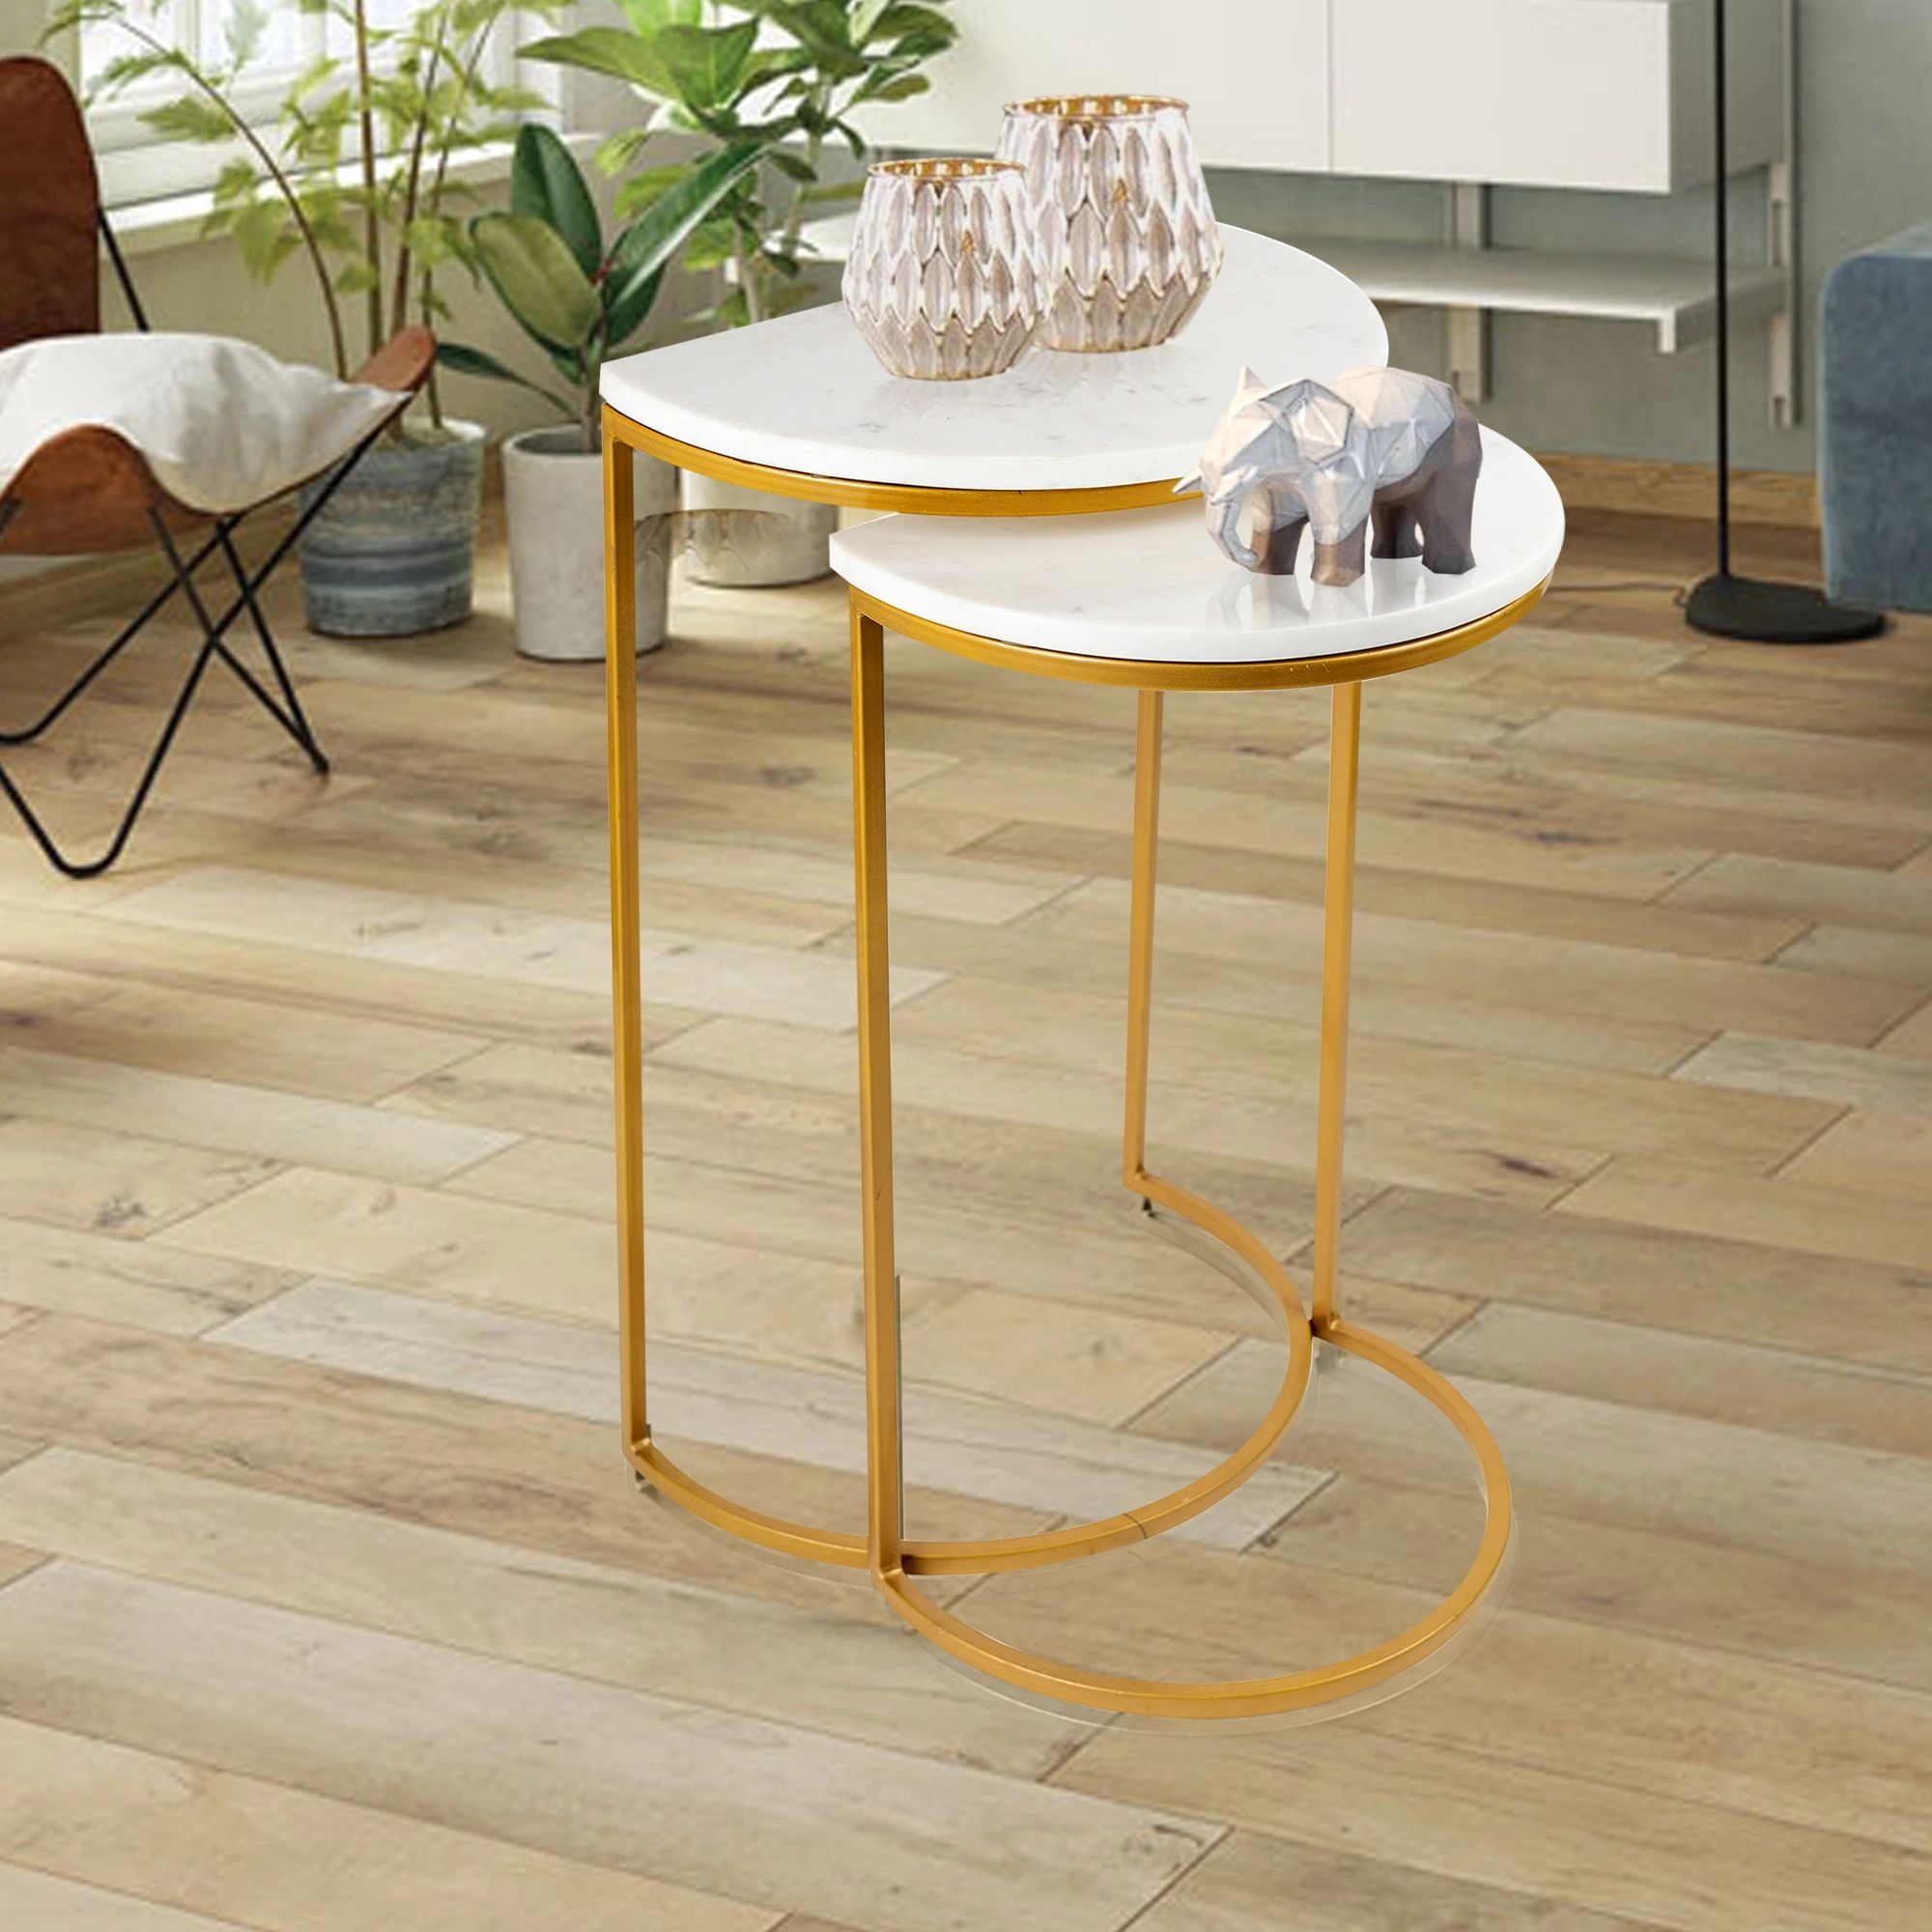 SU-178 WHT- Side Table- Gold p/coat w/ white marble - Nusteel